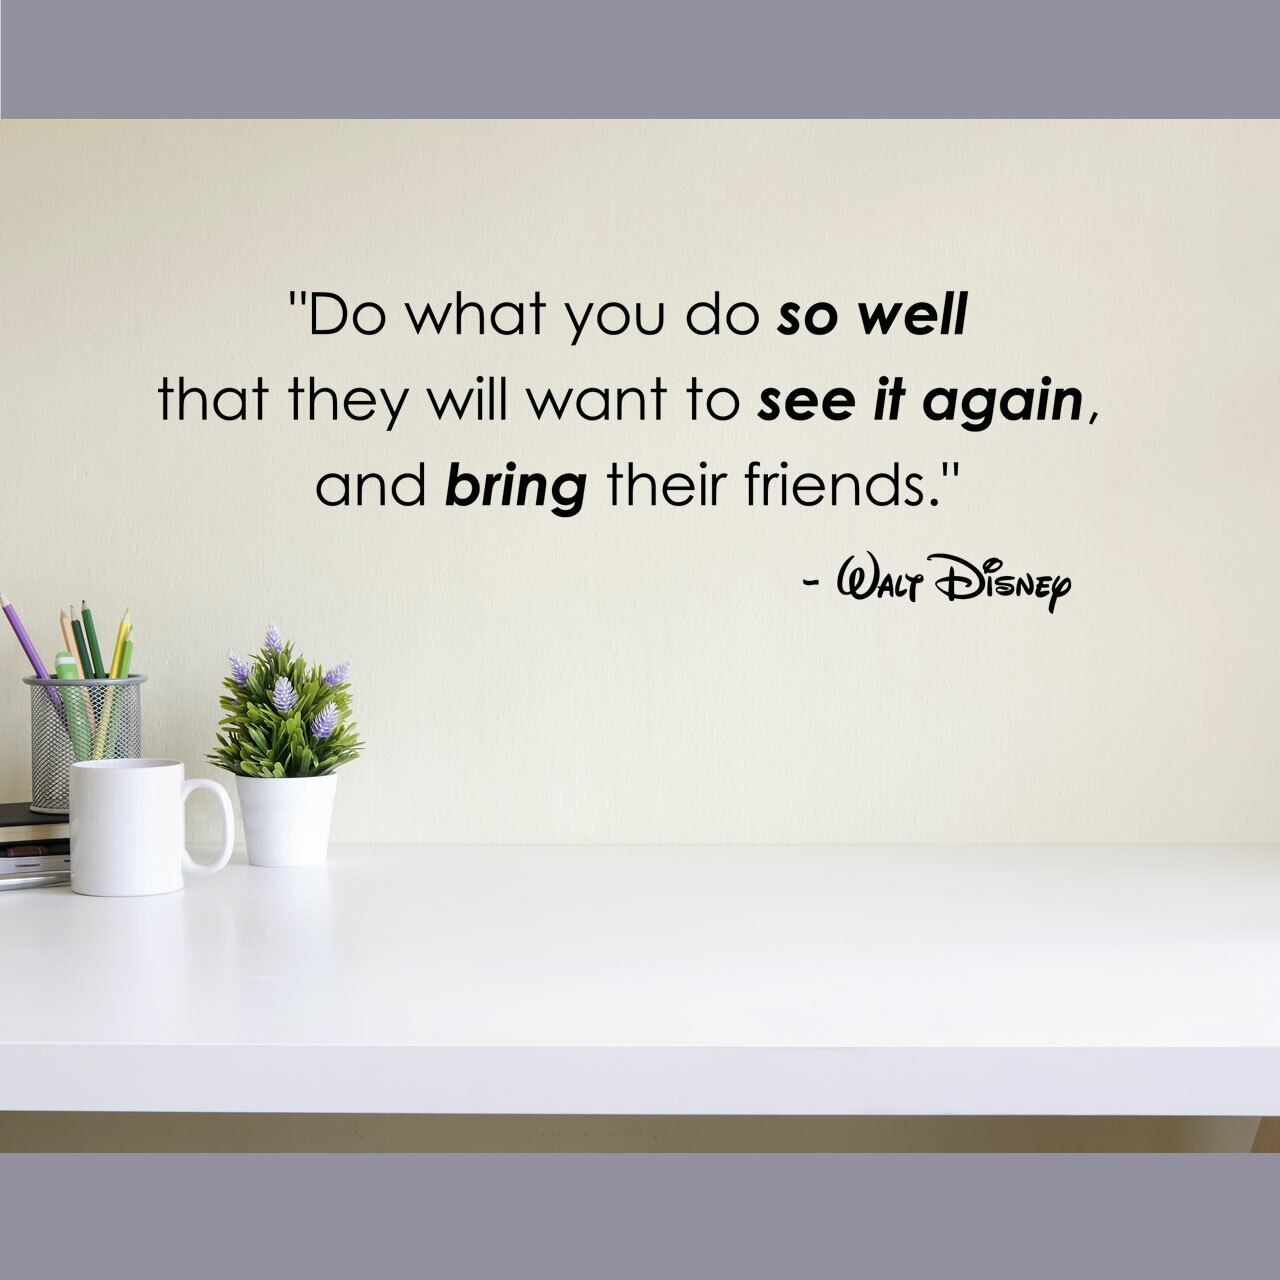 """""""Do what you do so well that they will want to see it again and bring their friends"""" -Walt Disney written in black vinyl lettering  applied to a beige wall to the right of a coffee cup, a basket with colored pencils and a potted plant"""